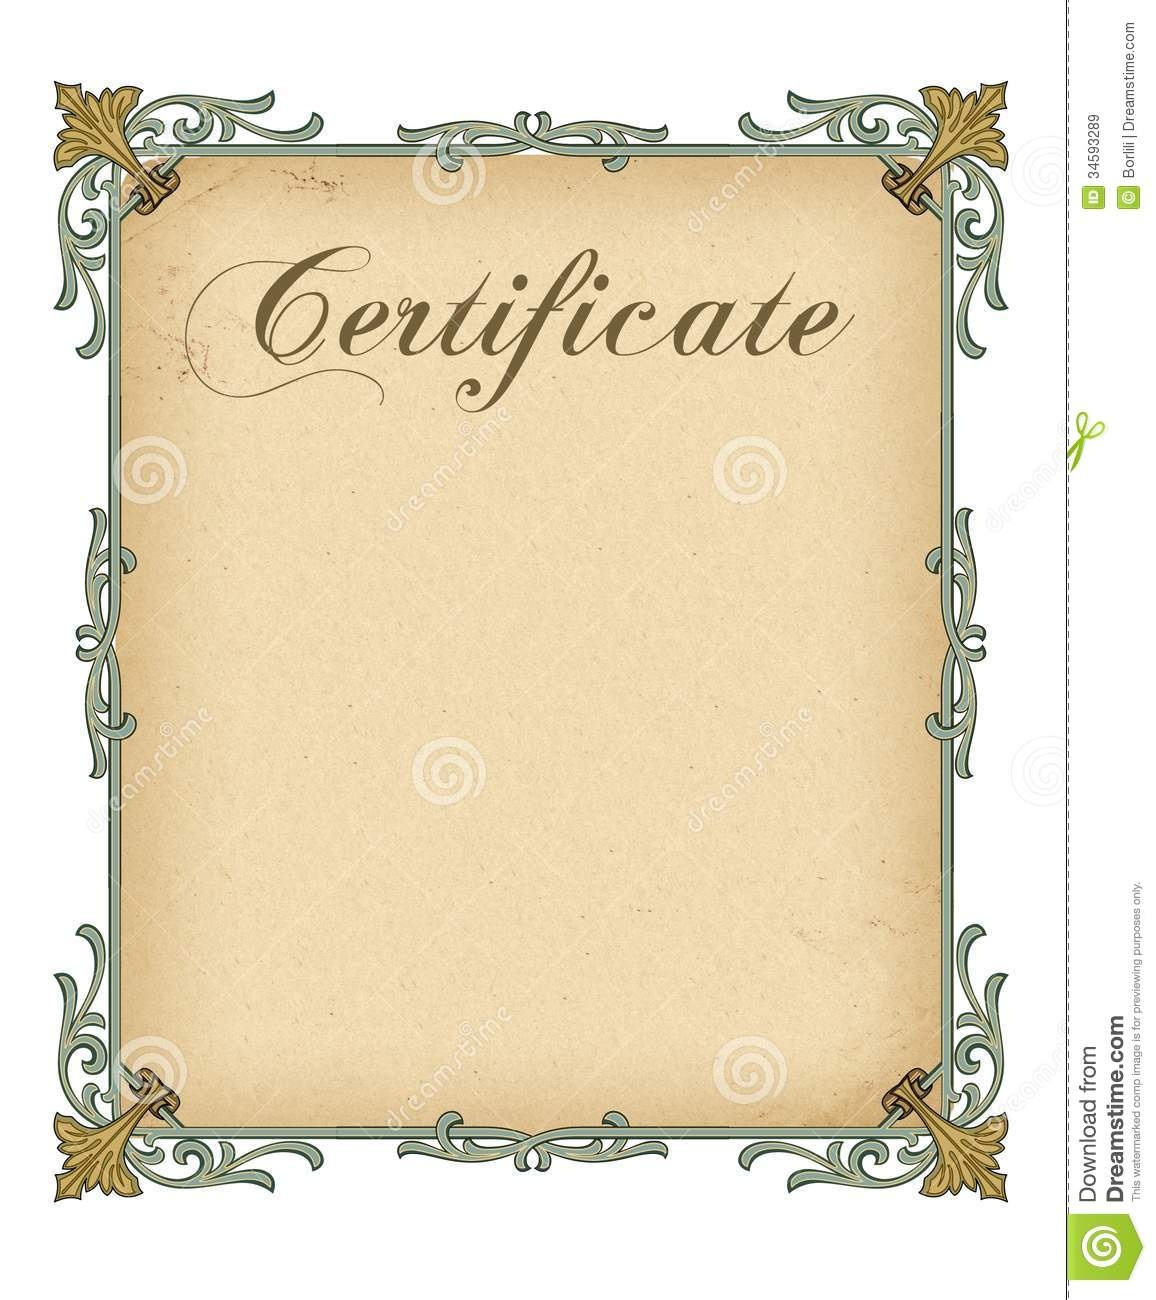 Blank Certificate Template - Tutlin.psstech.co - Commitment Certificate Free Printable